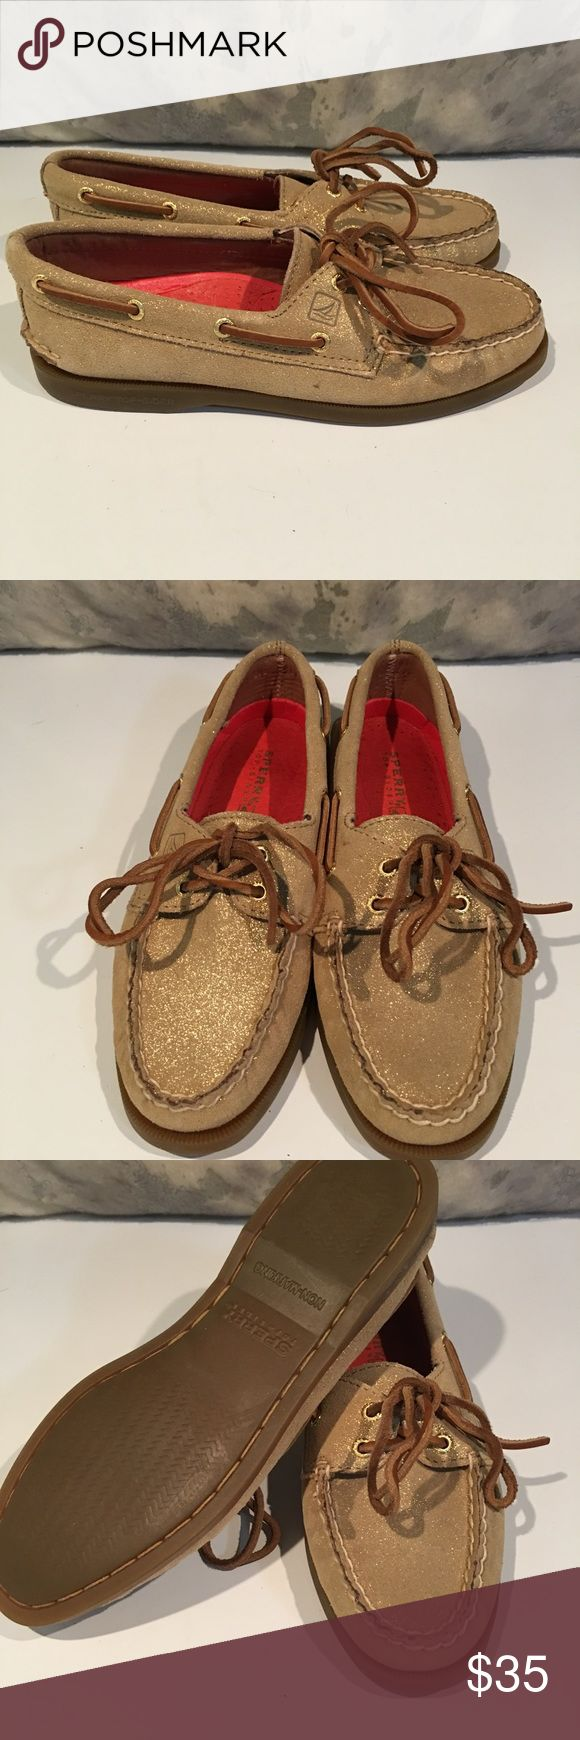 BRAND NEW WITHOUT TAGS SPERRY GLITTER GOLD Size These are BRAND NEW.  Size 6.5.  Glittery gold.  We are cleaning out closets and have many designer items that need to find a new closet.  PRICED TO SELL QUICKLY!!! Bundle bundle bundle for additional savings. Sperry Shoes Flats & Loafers